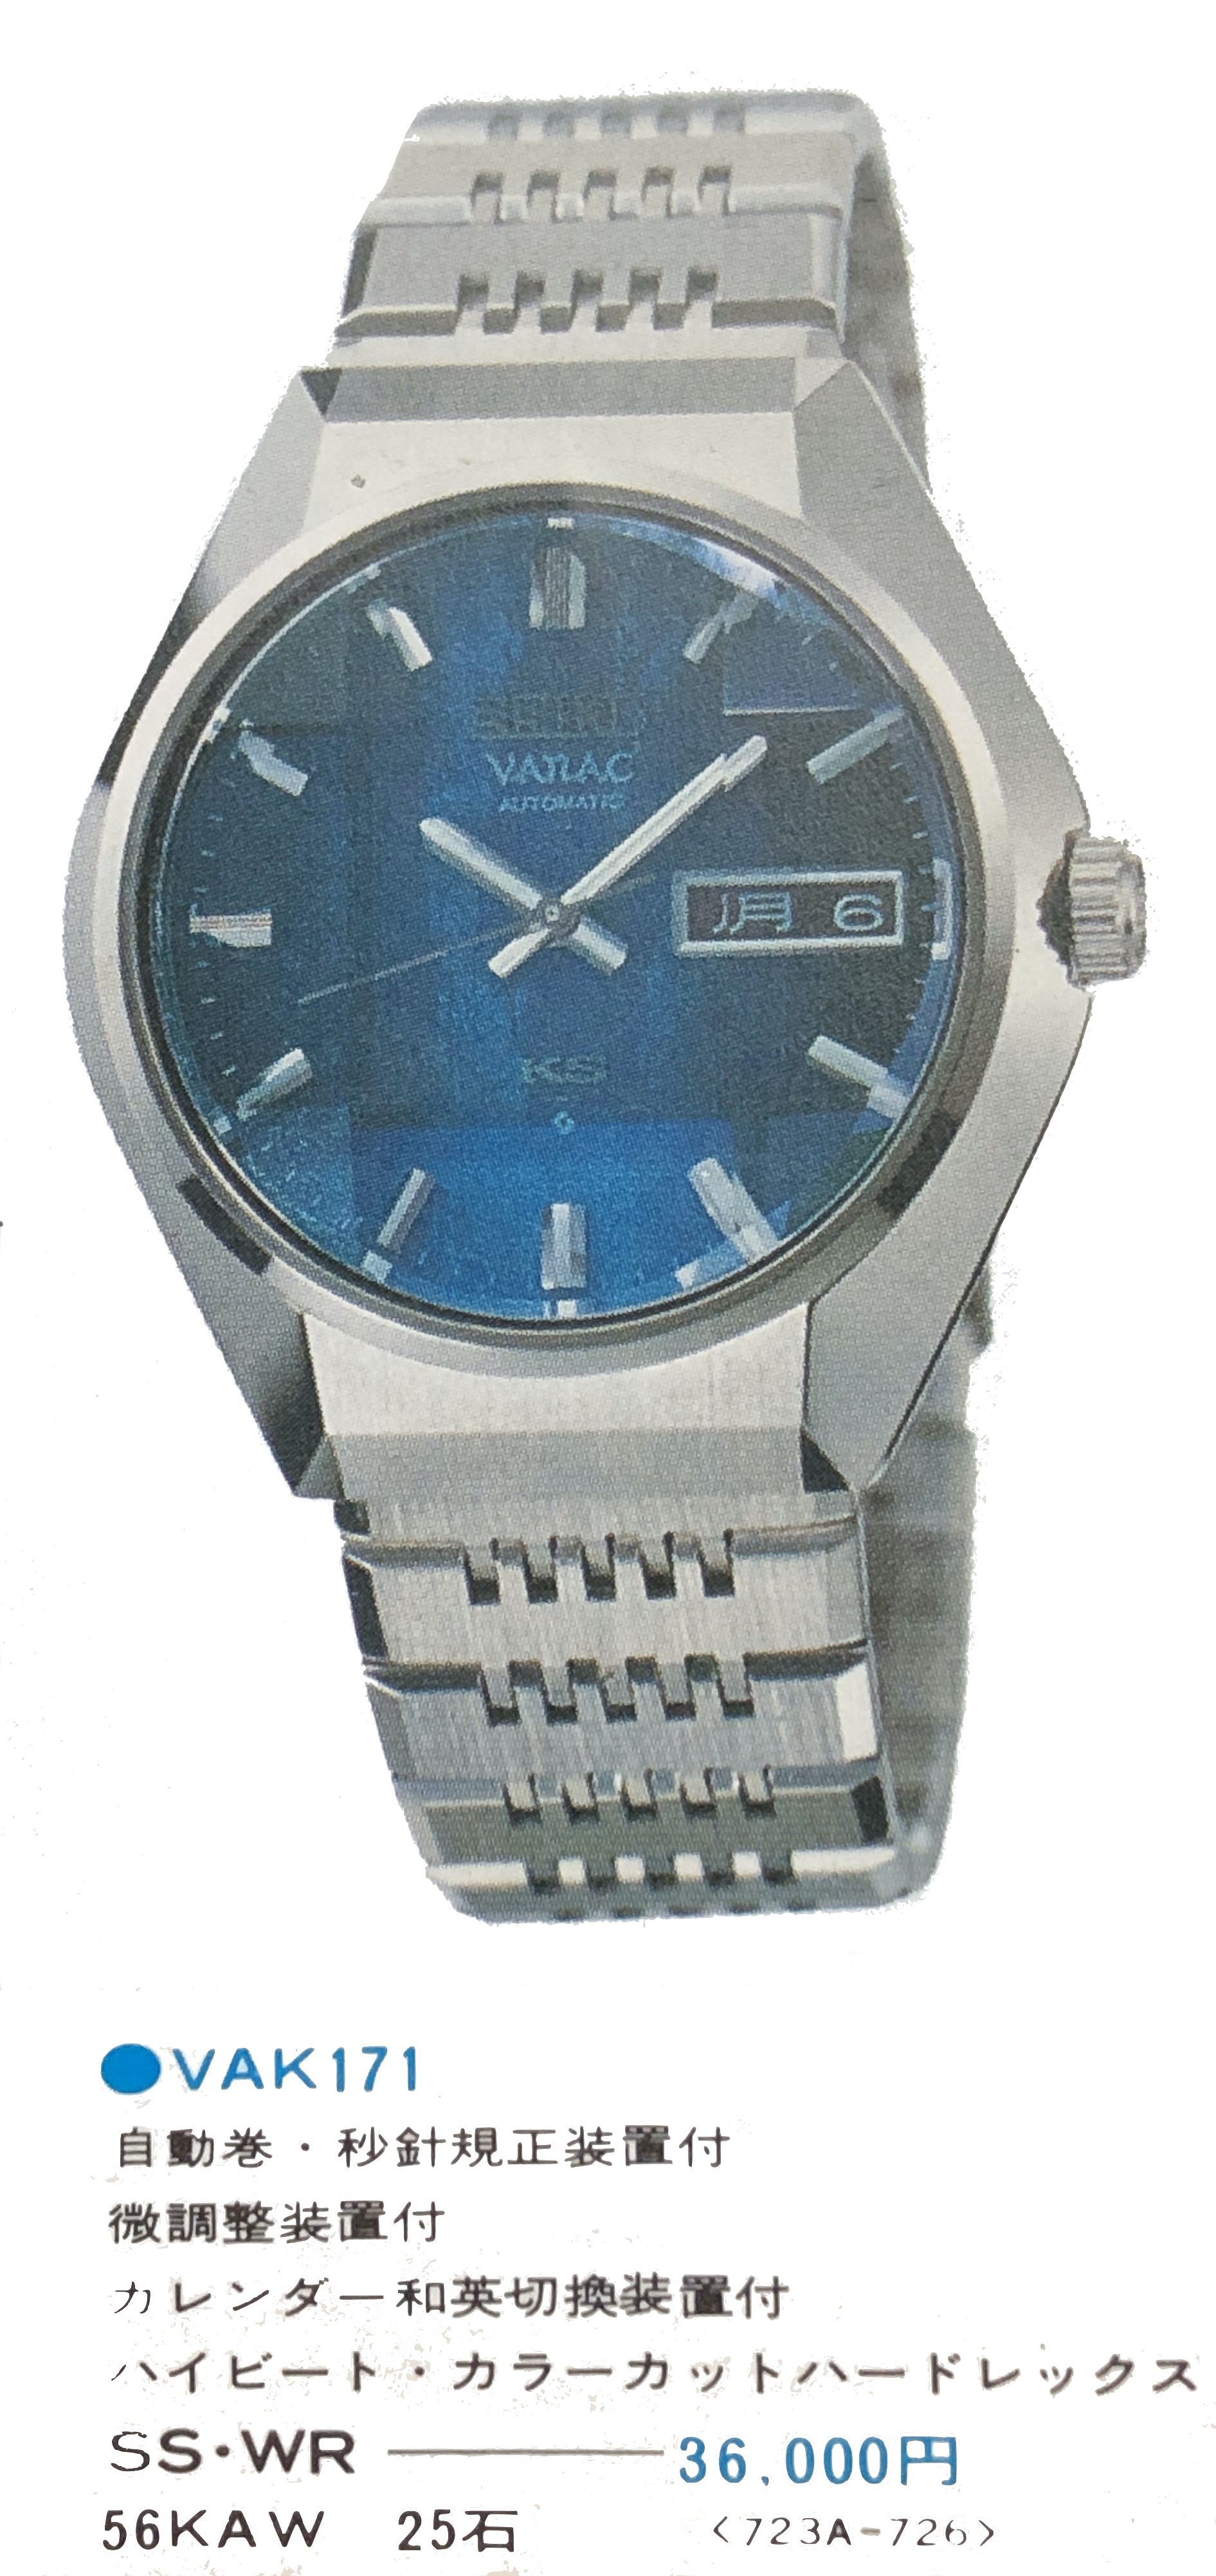 King Seiko Vanac 56236-723A (Incoming/Reserved)